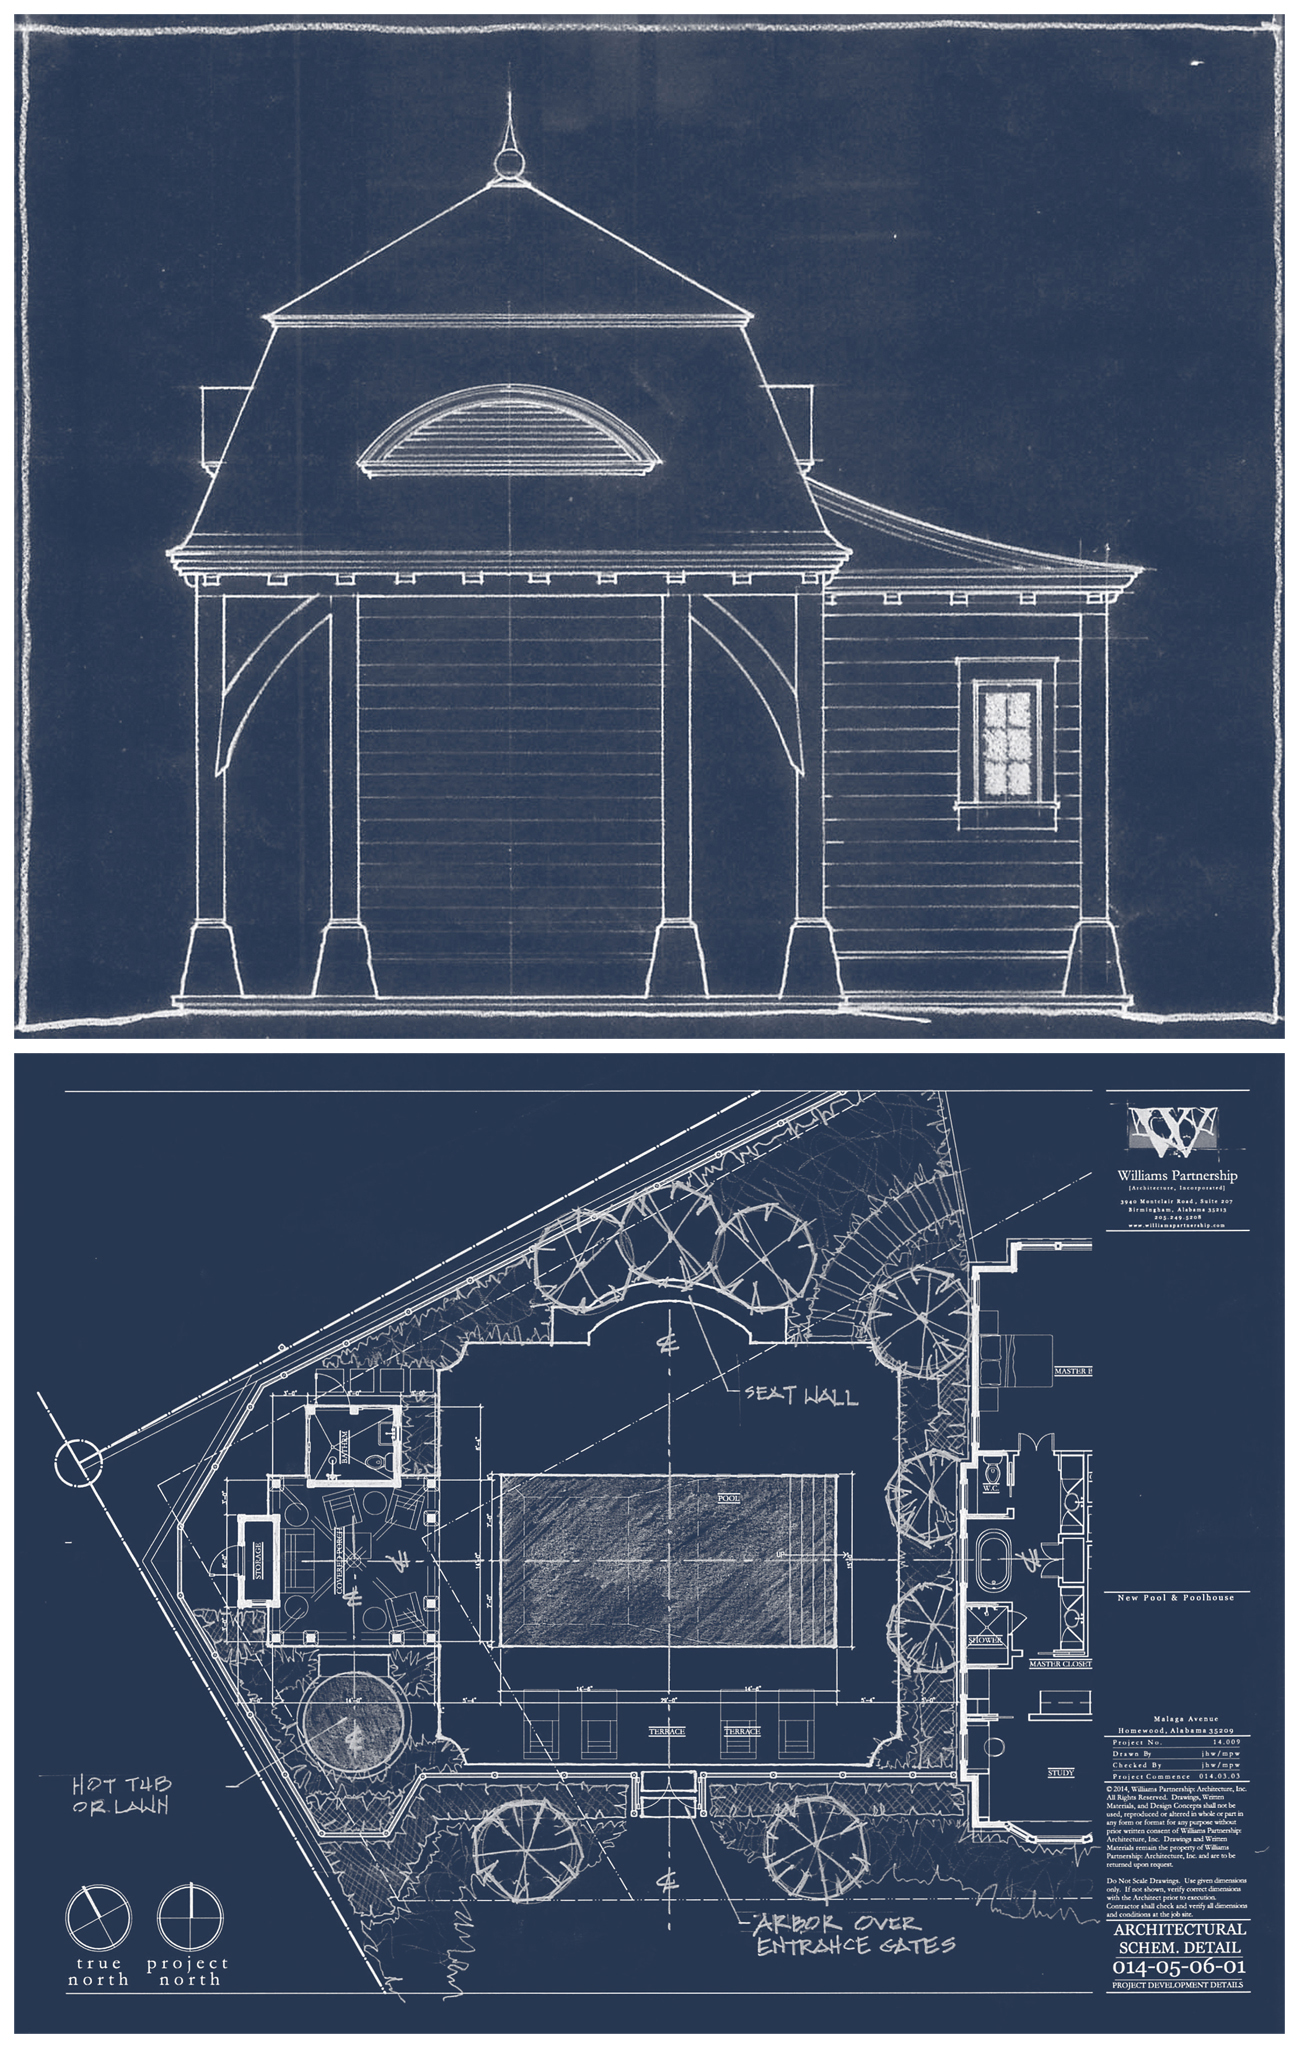 malaga_hollywood_homewood_cape_cod_inspired_poolhouse_04_pool_house_pavillion_mansard_cedar_shake_roof_timber_frame_hand_drawn_sketch_site_plan_elevation_duotone_1300.jpg